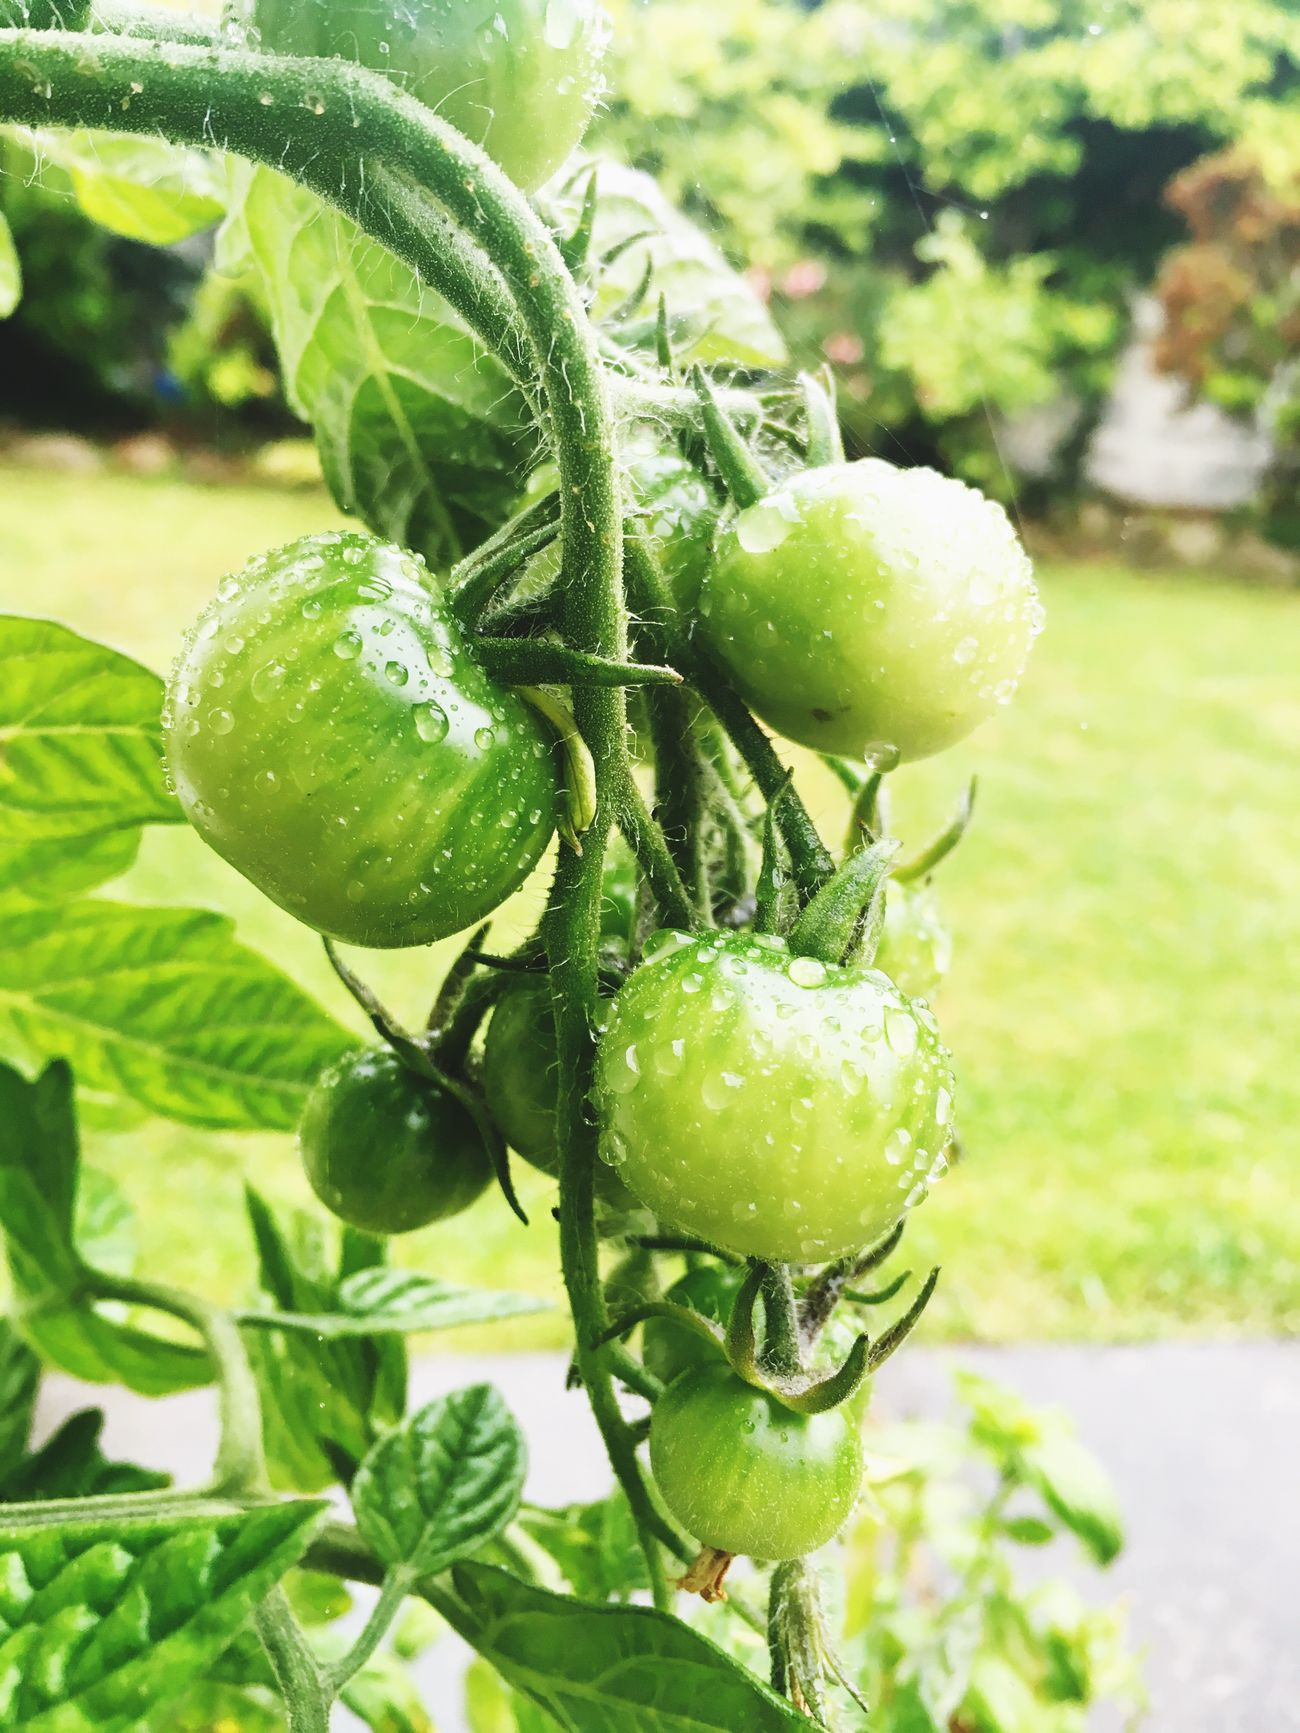 Rain Tomatoes Green Tomatoes Green Color Freshness Focus On Foreground Unripe Beauty In Nature Drop